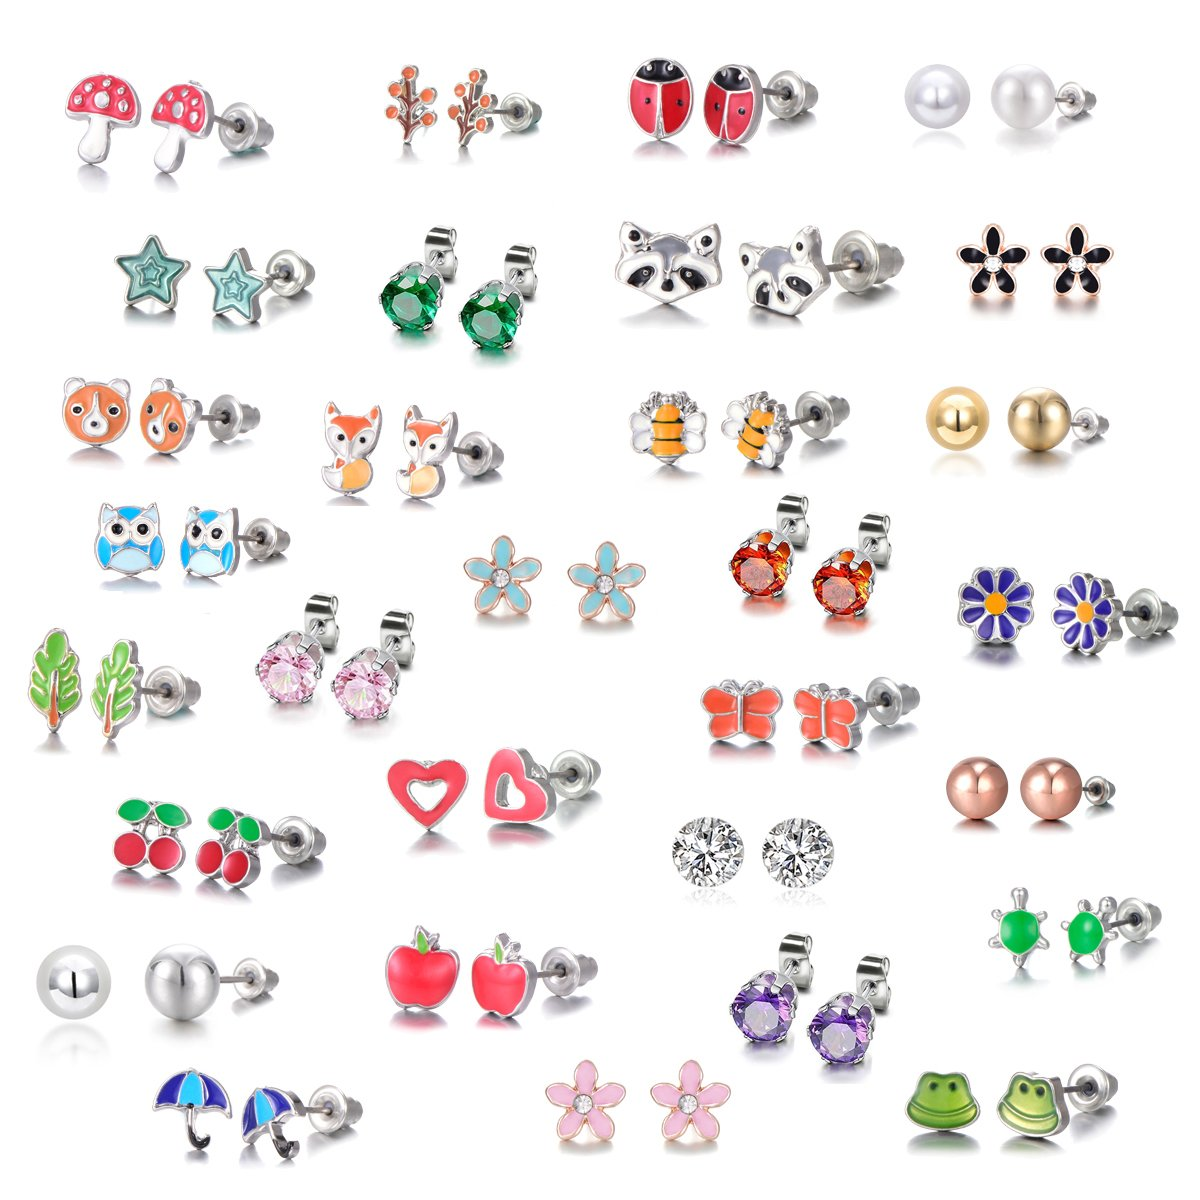 30 Pairs Stainless Steel Mixed Color Cute Animals Fox Heart Star Ladybug Bee Frog Mushroom Tree Daisy Umbrella Rose Gold White Pearl CZ Jewelry Stud Earrings Set (animal tree pearl) by Tamhoo